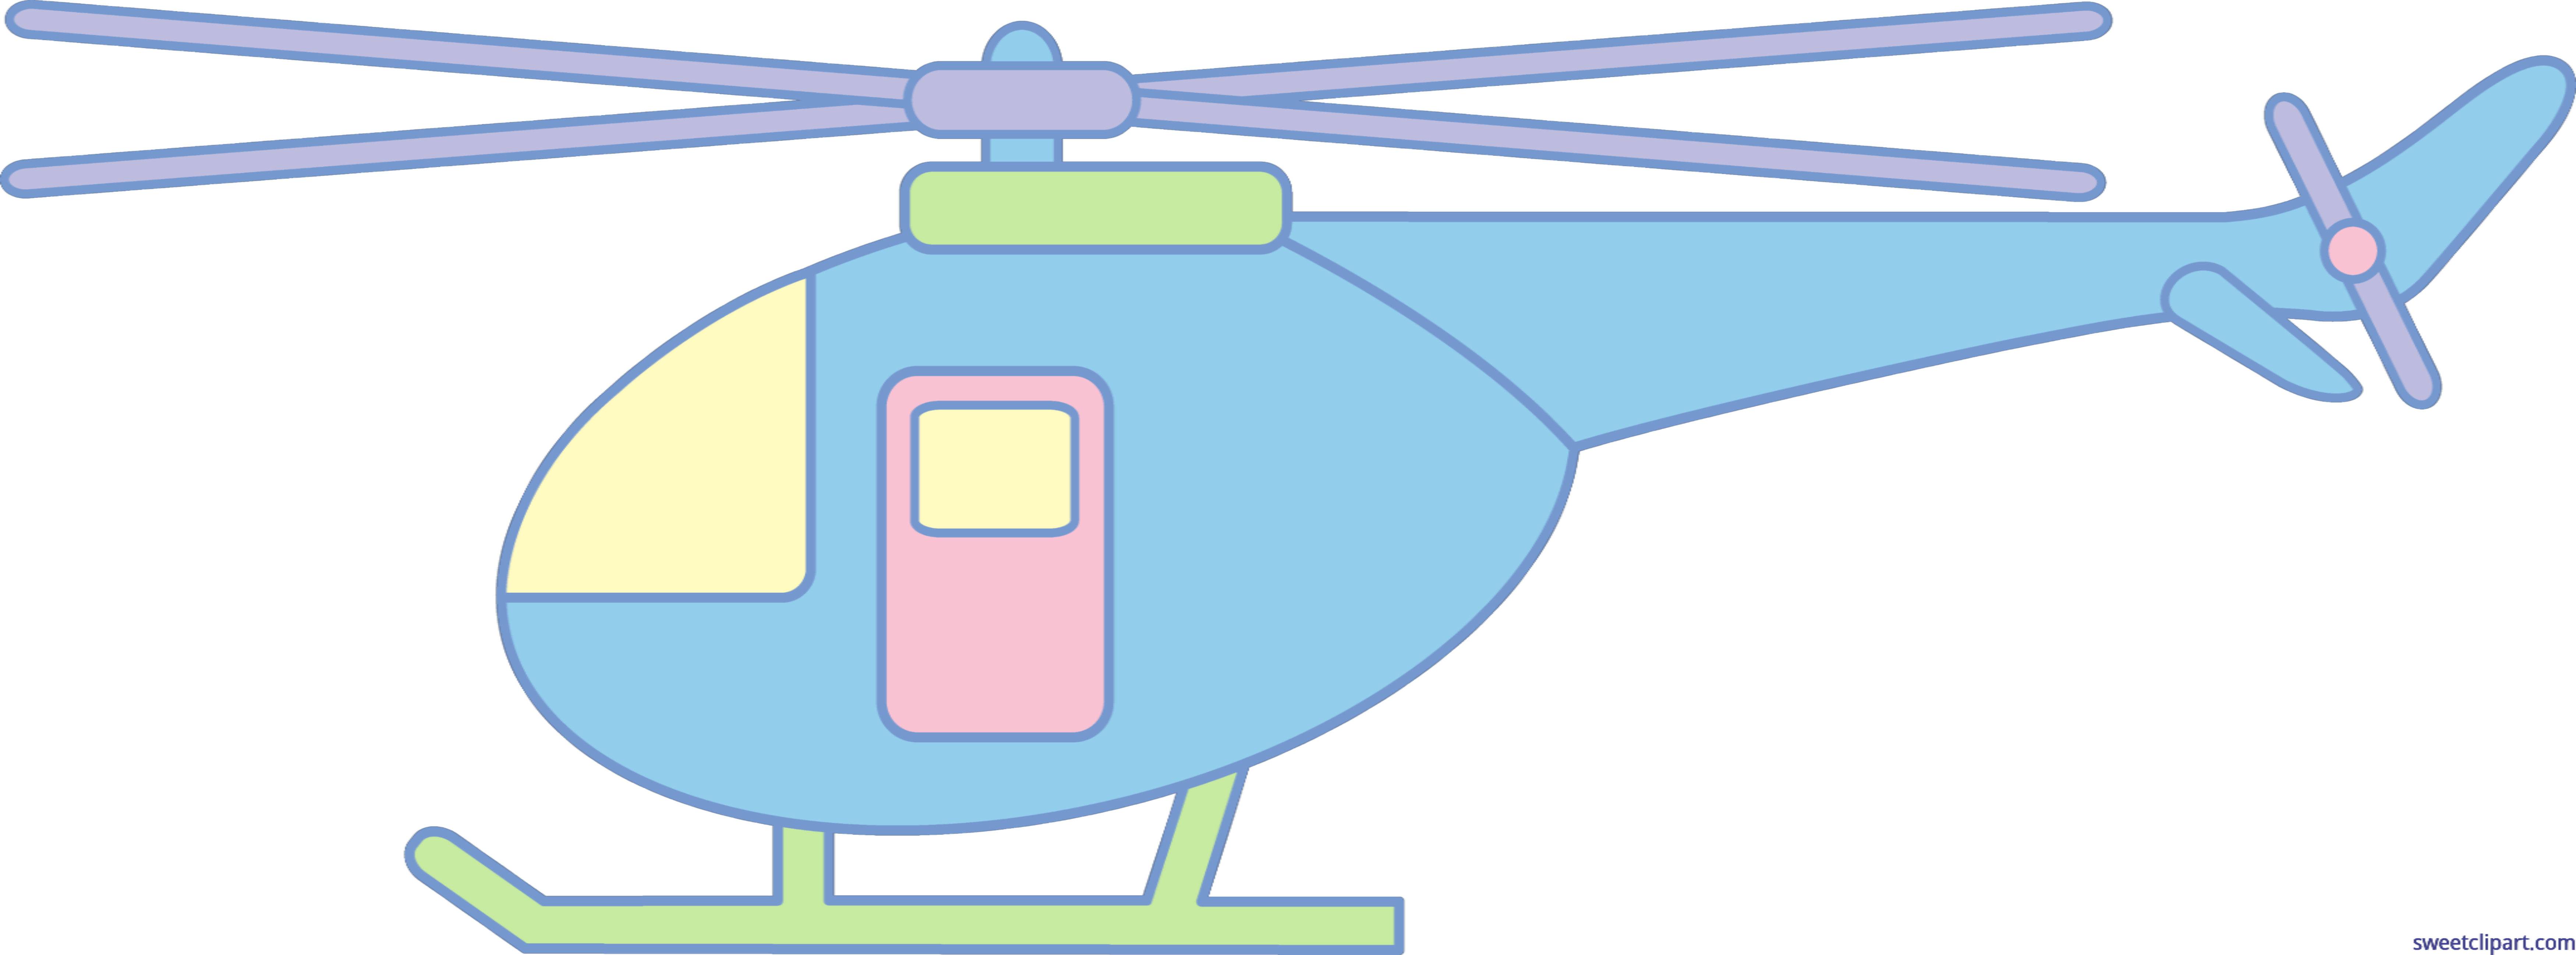 Helicopter clipart orange. Pastel clip art sweet